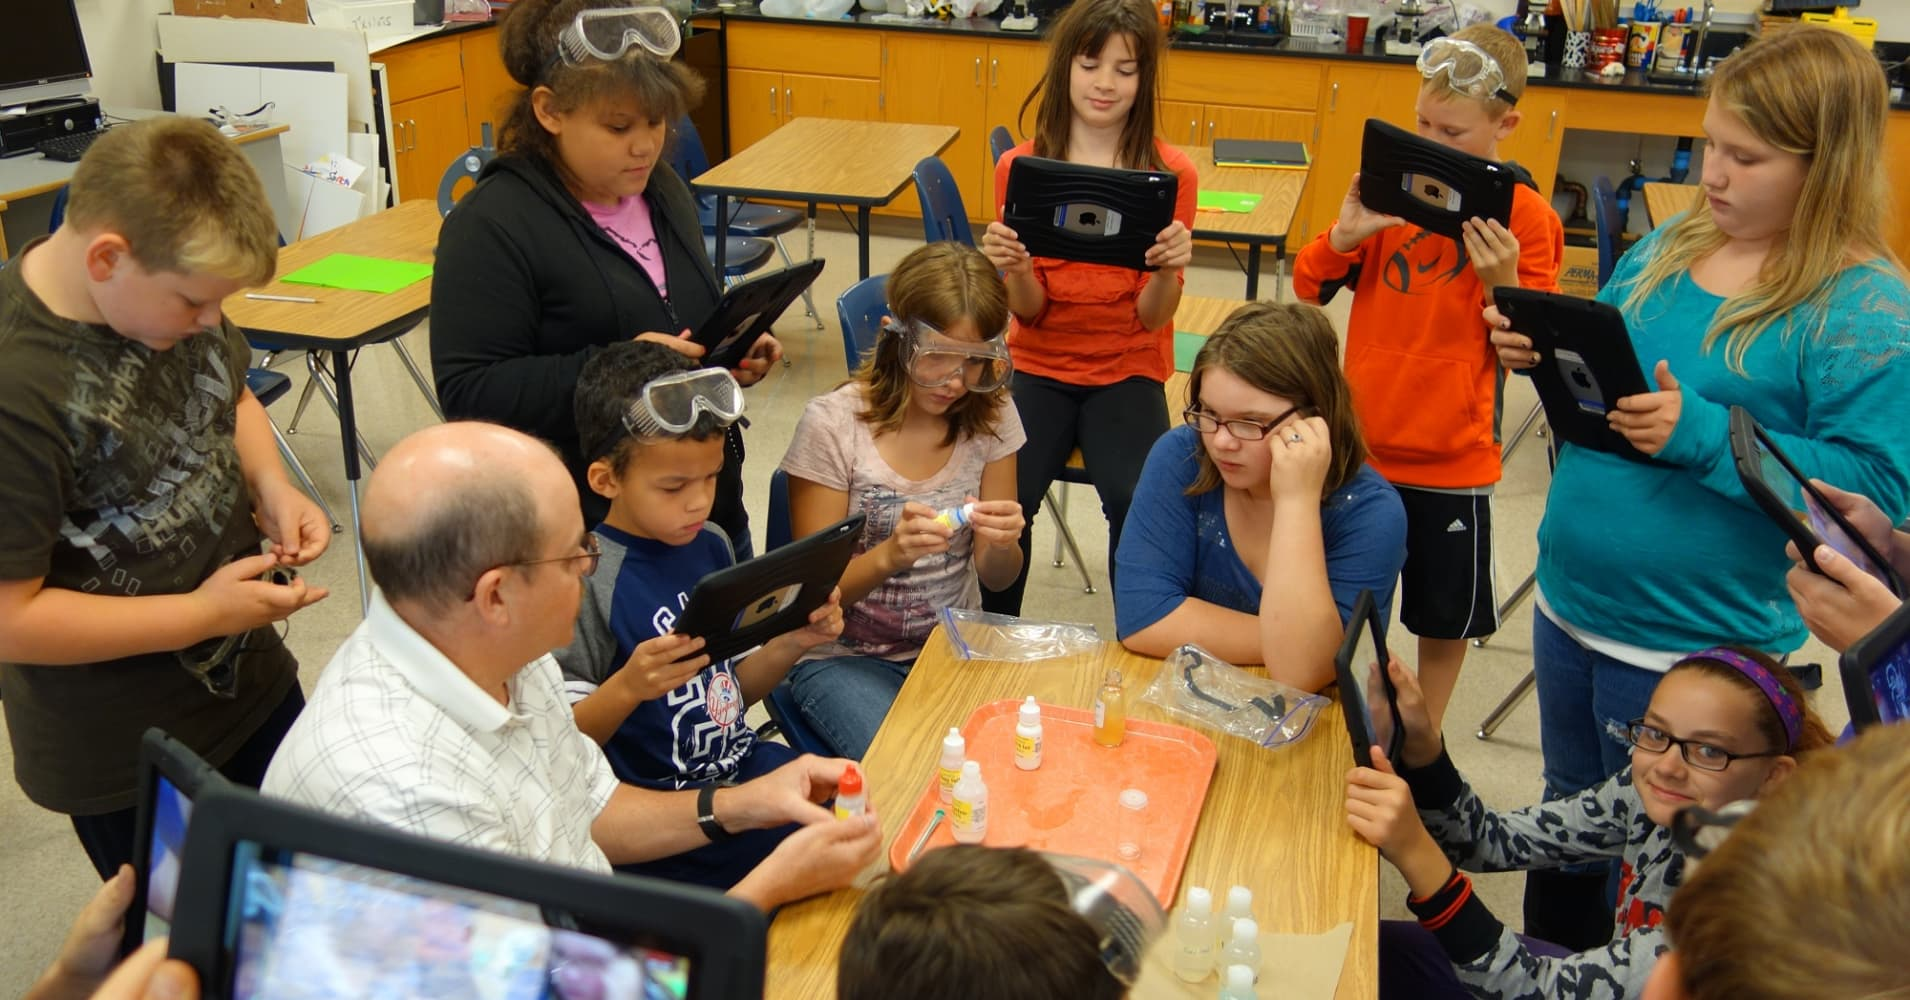 A science class in Wellsville, New York